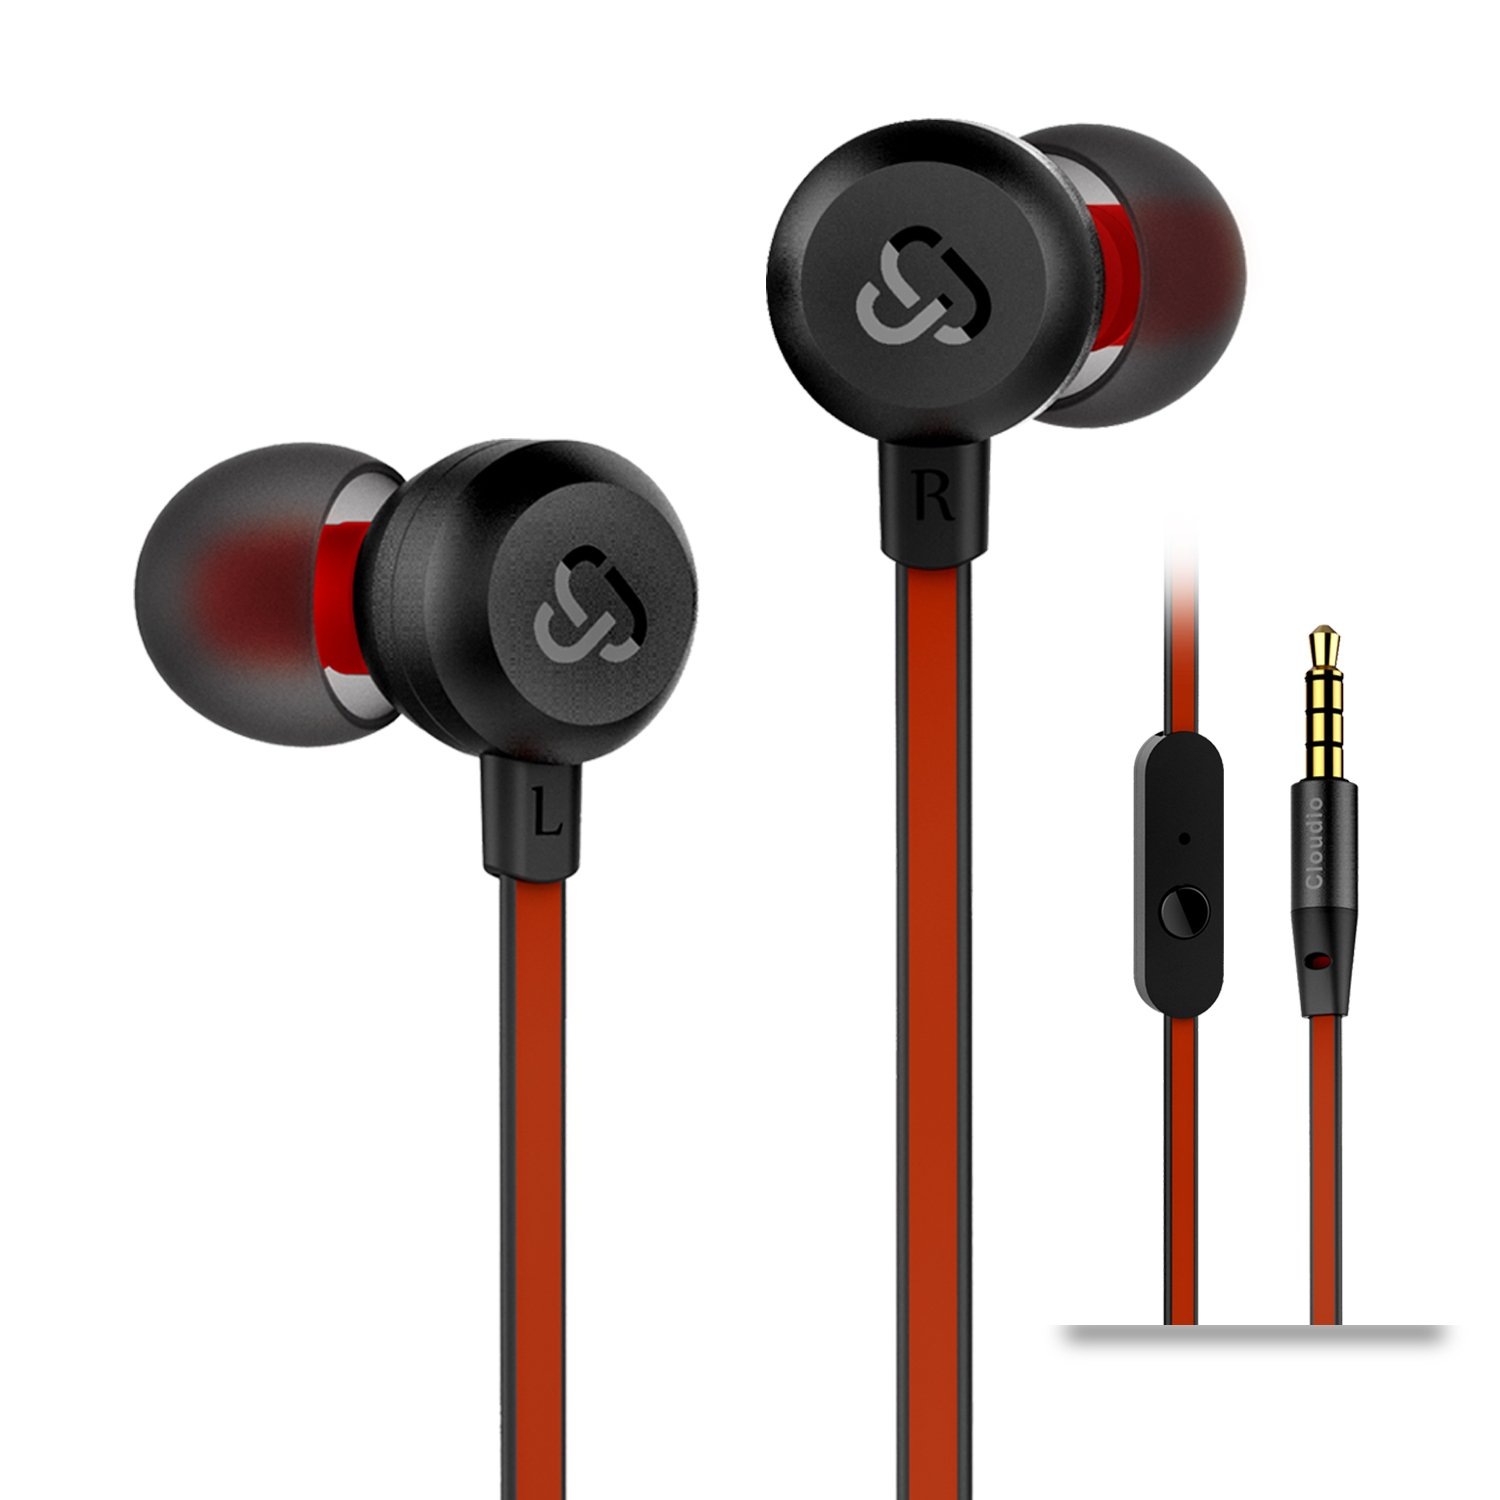 Earphones Cloudio J1 Noise Cancelling Earbuds In Ear Headphones With Microphone Noise Isolating Earbuds Sports Headphones Super Bass Earbuds For iPhone Android Phone iPad Tablet Laptop(Black) by Cloudio